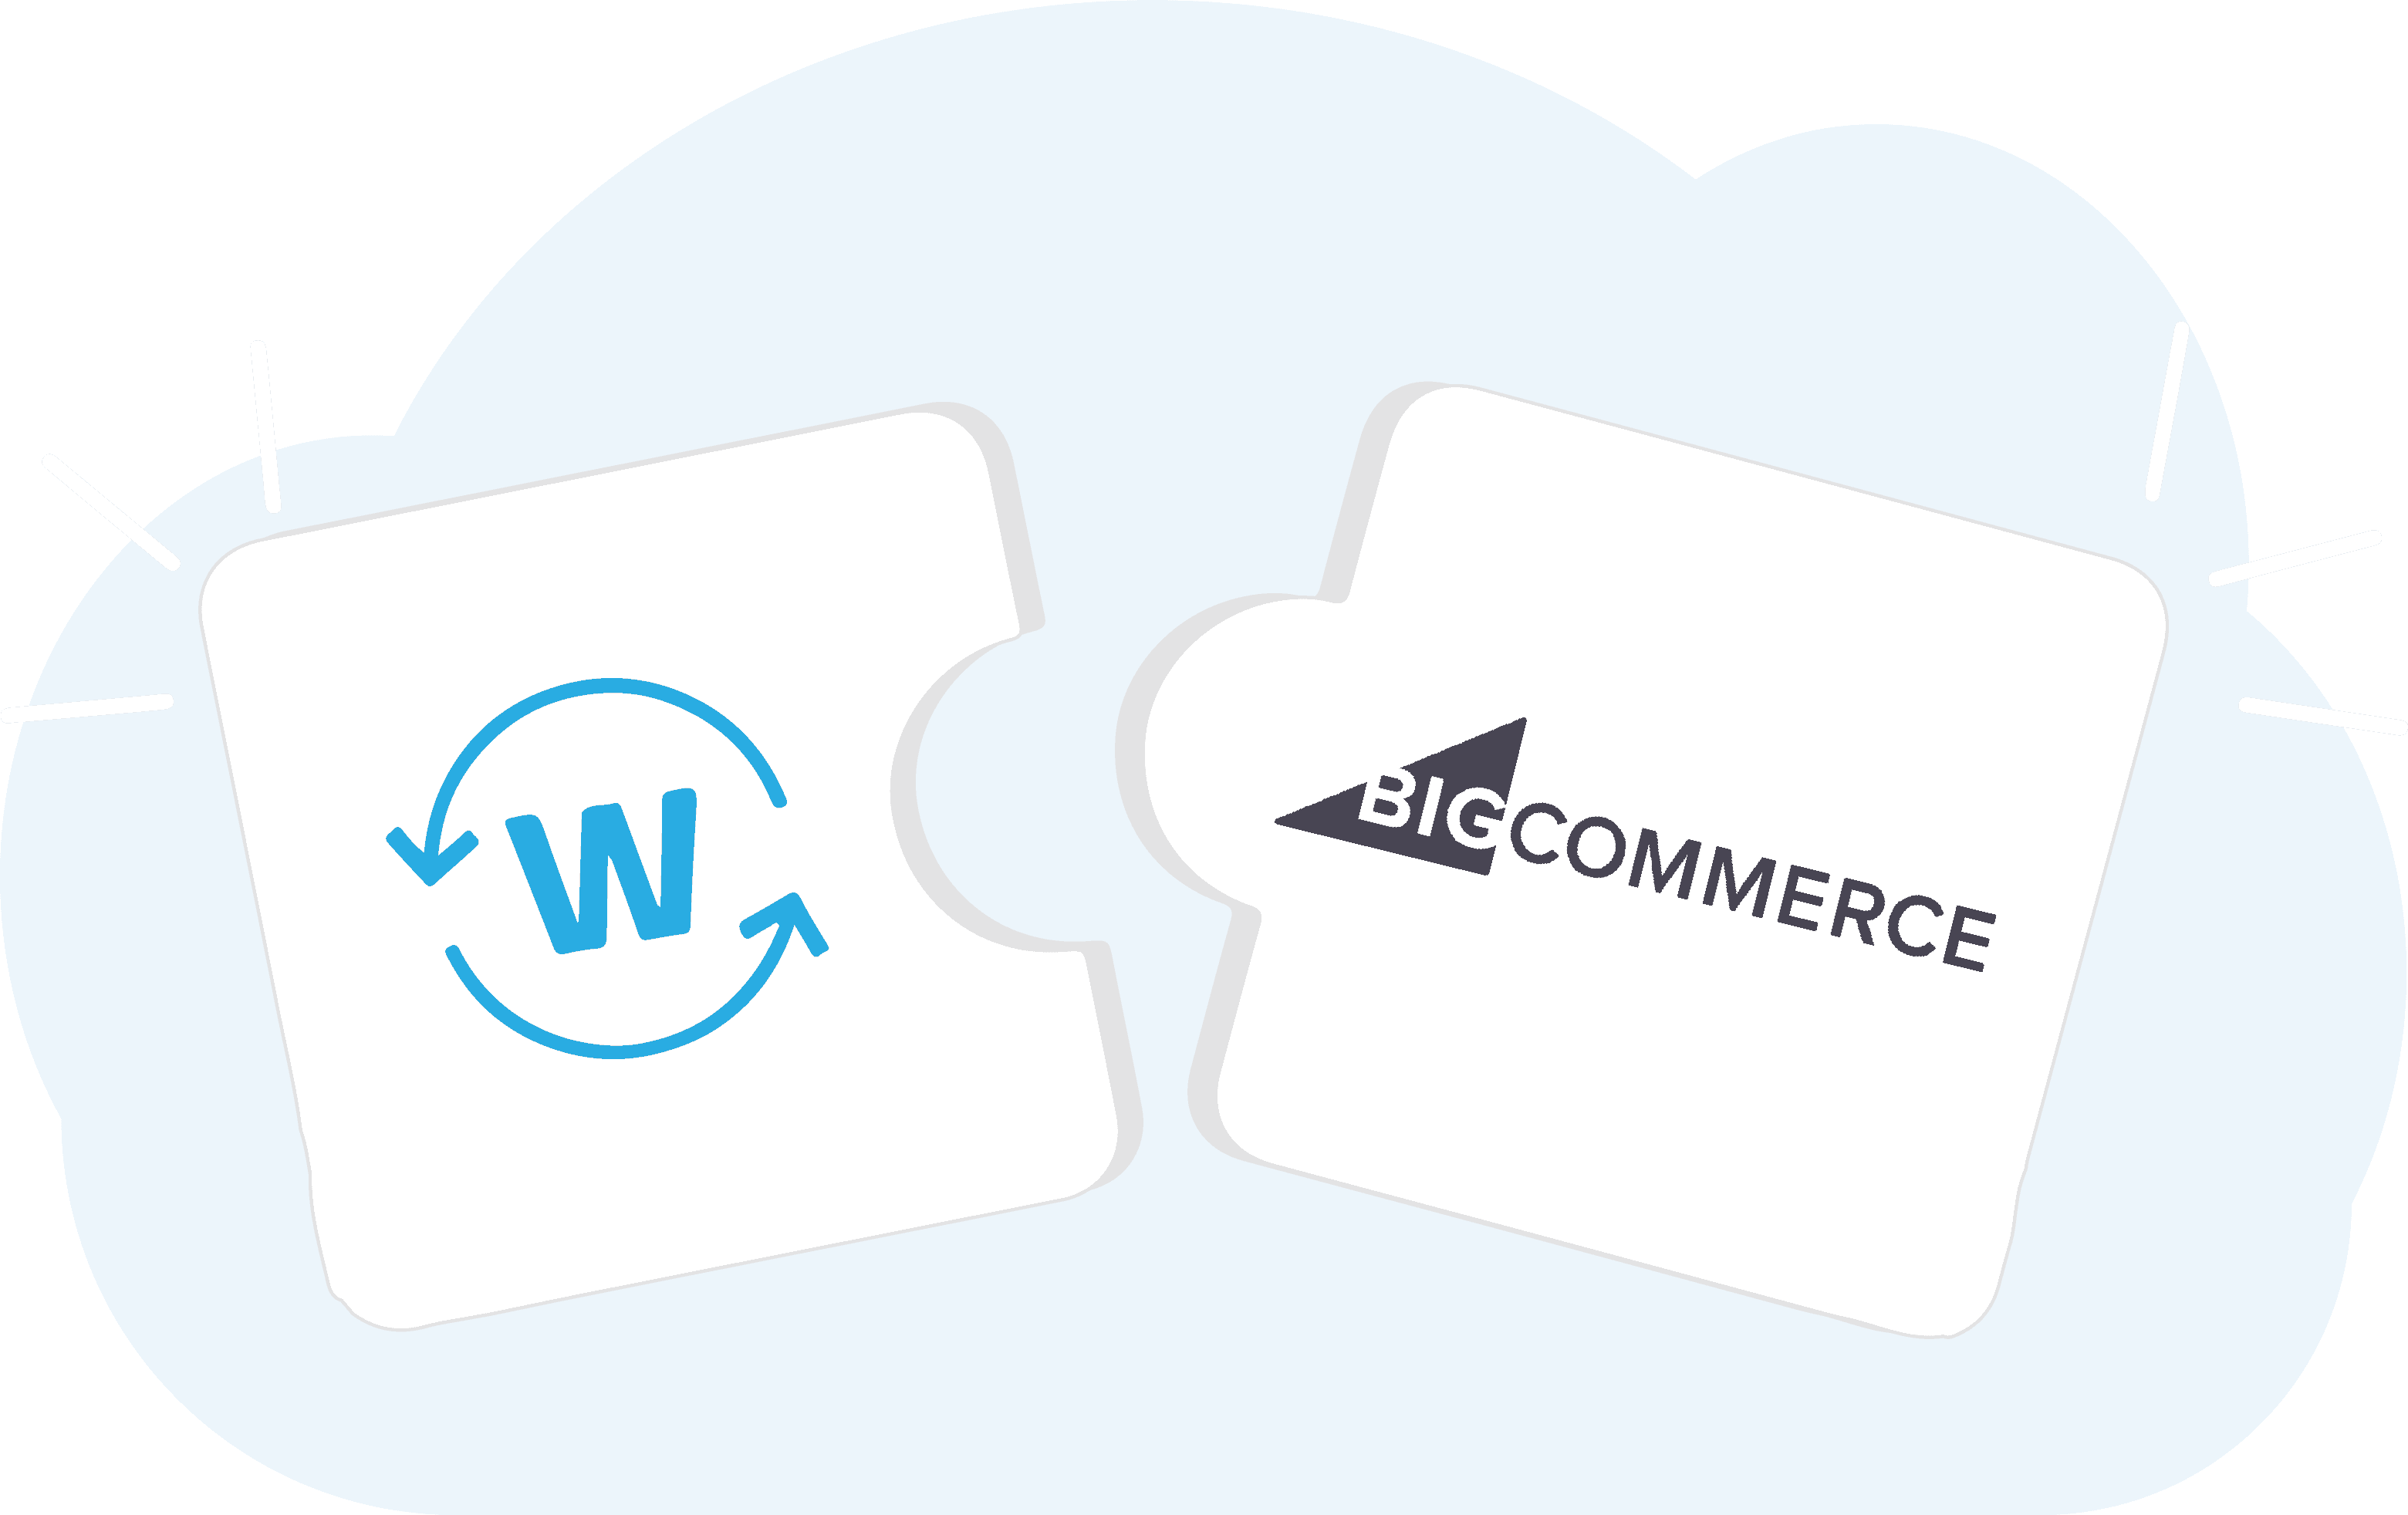 BigCommerce Integrates with Wigzo